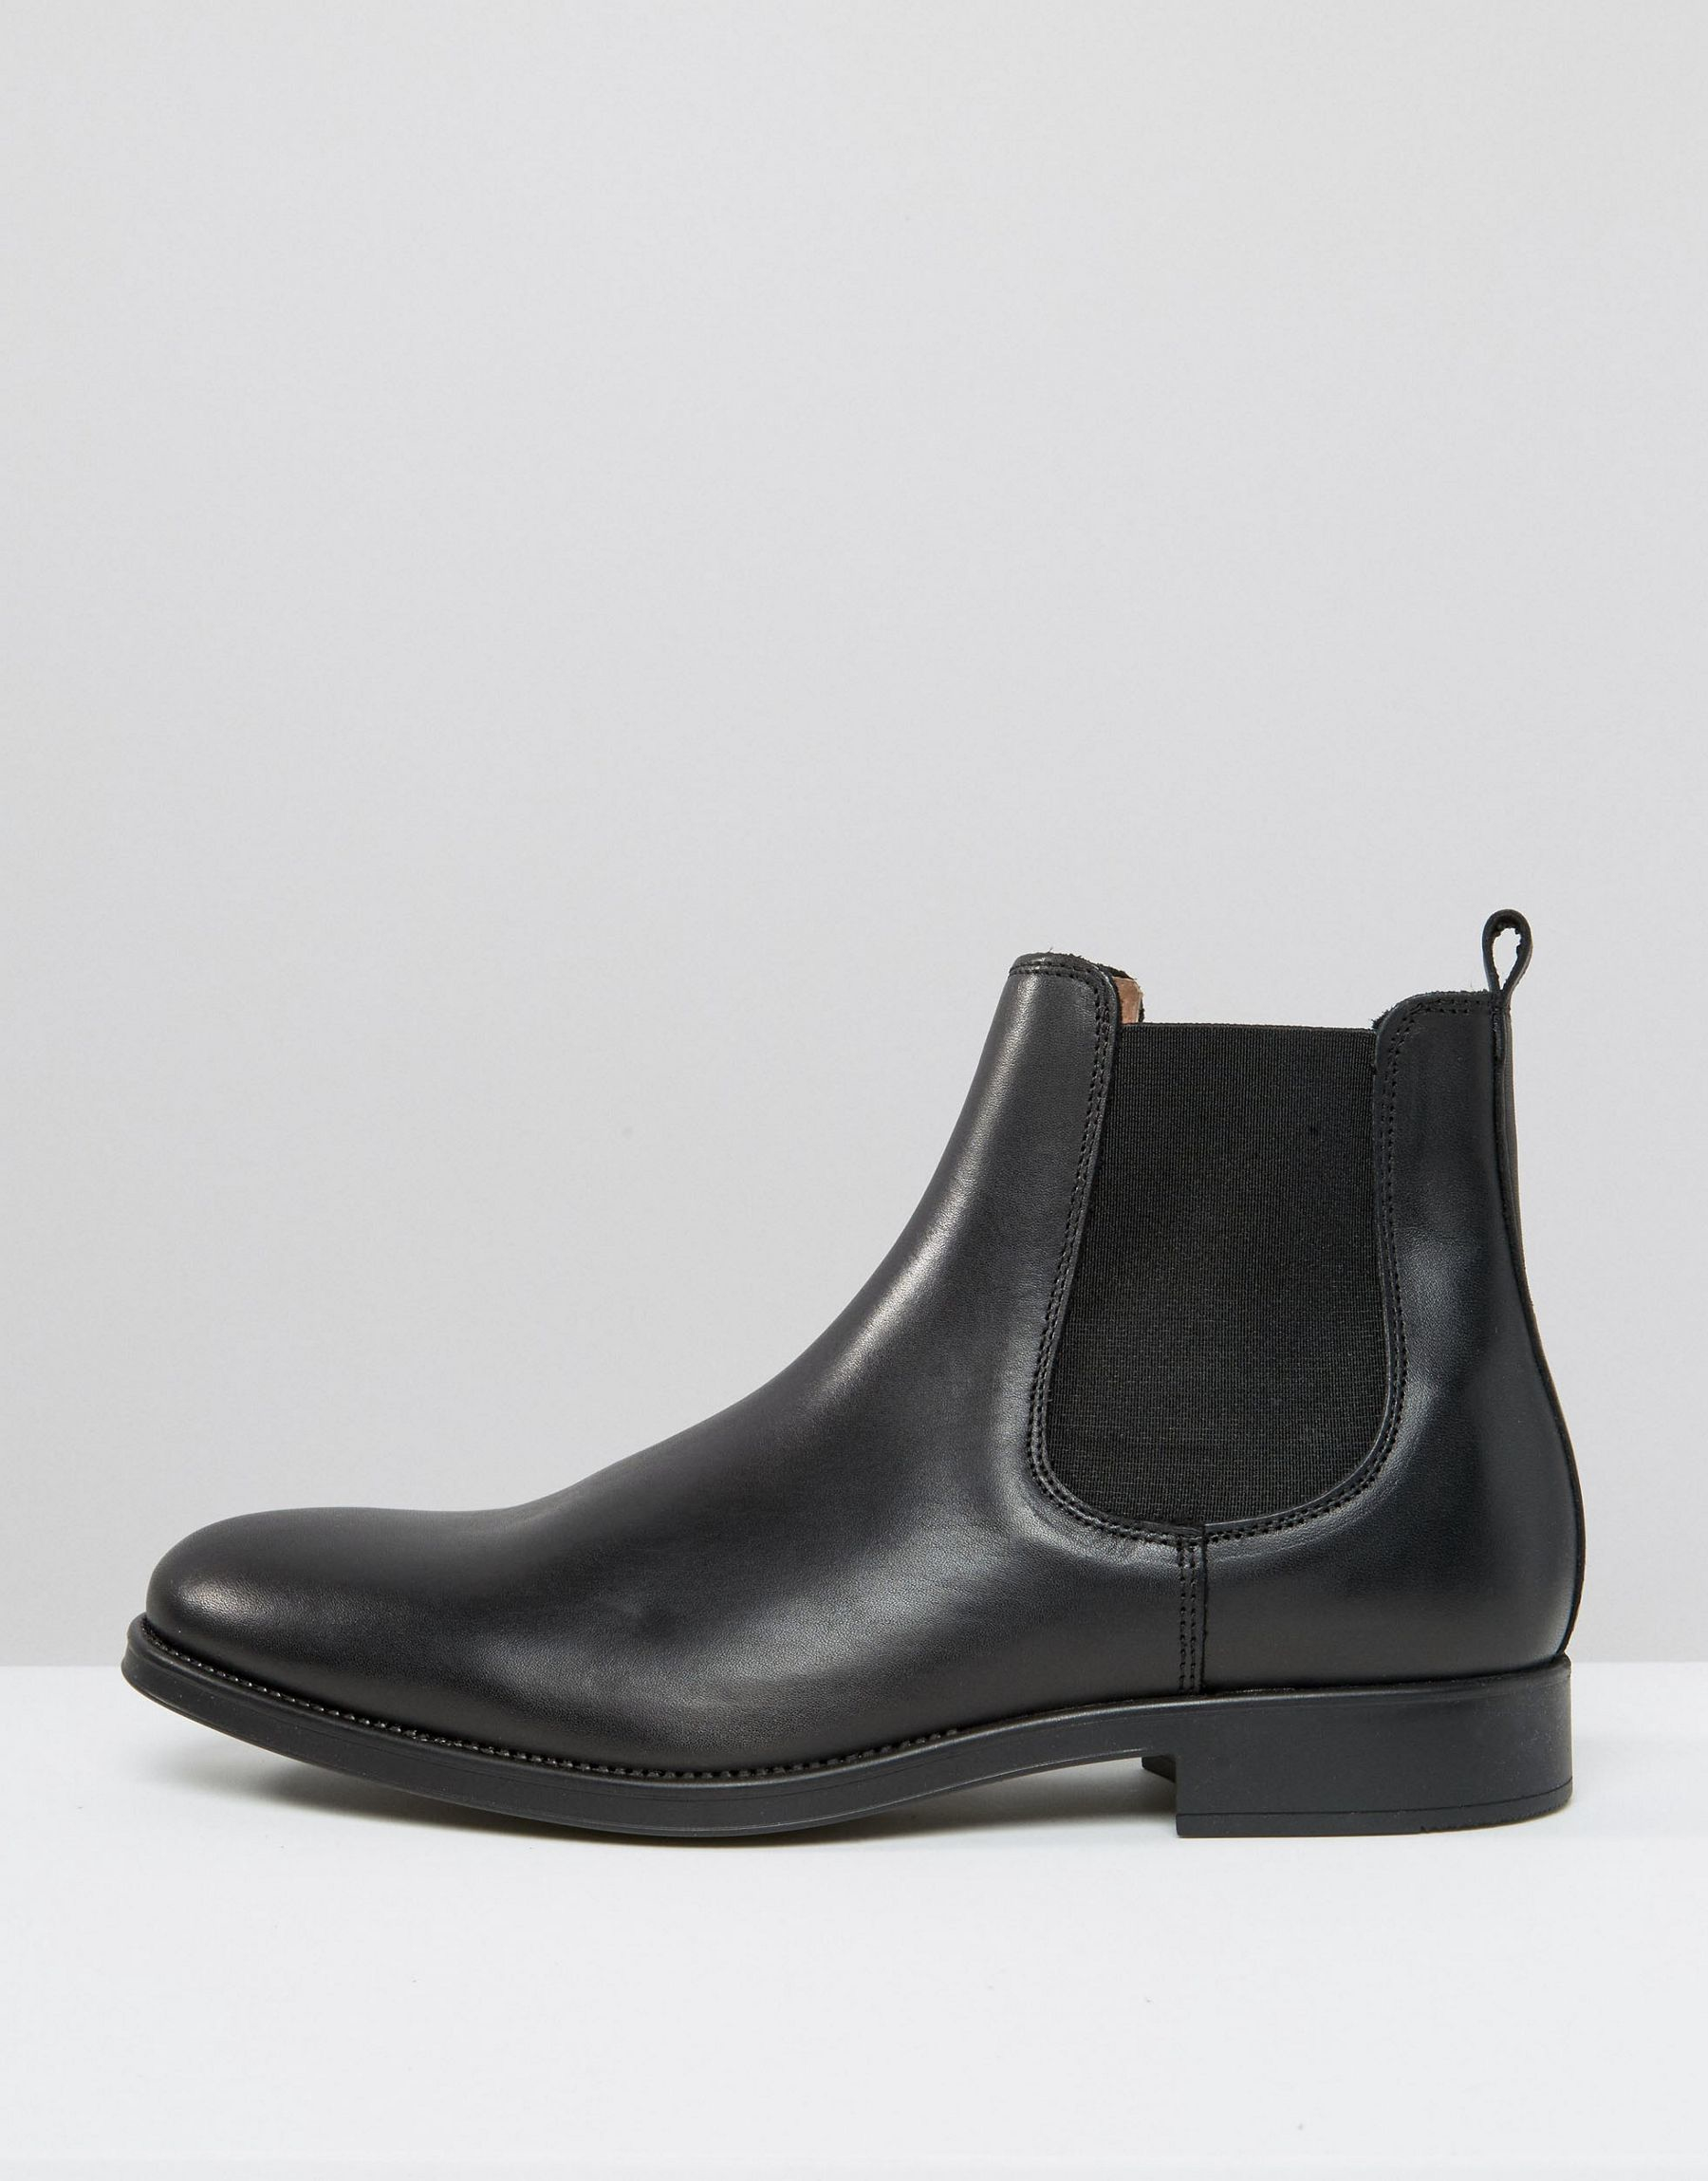 selected elected homme oliver leather chelsea boots in black for men lyst. Black Bedroom Furniture Sets. Home Design Ideas